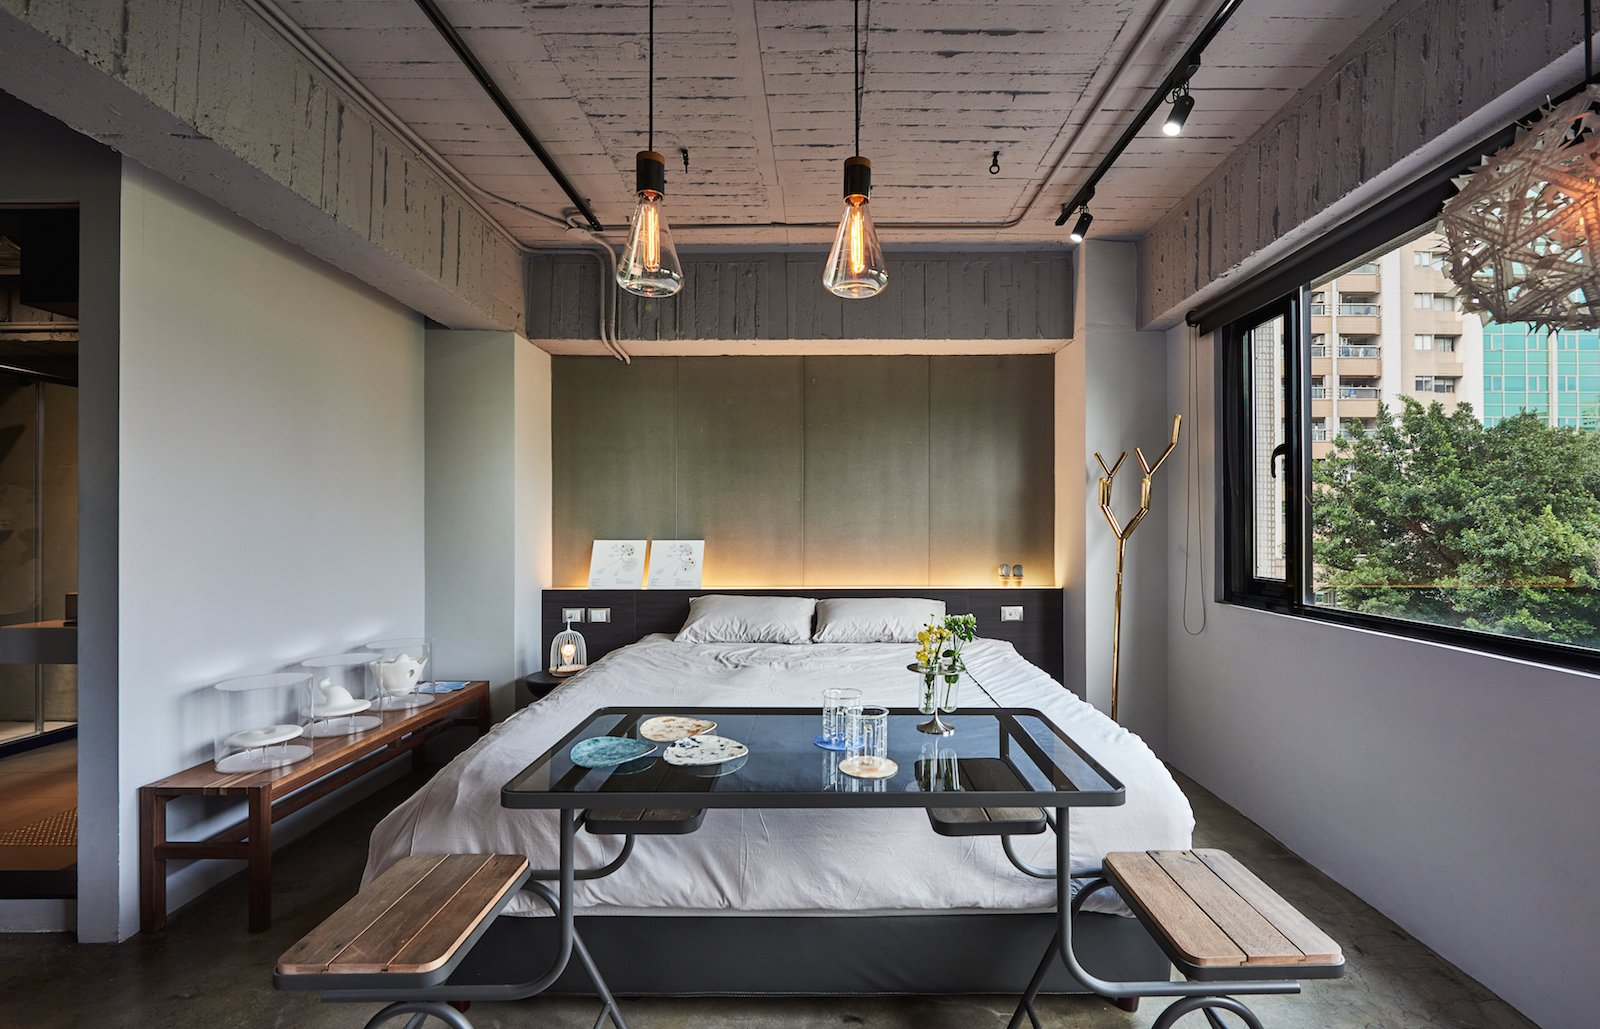 Bedroom, Pendant, Bed, Bench, Track, Concrete, Night Stands, and Accent Located on the fifth floor of an unassuming building in Datong district, Play Design Hotel is a hidden gem with only a small sign to announce its presence. Polished concrete walls and floors coupled with large, black, metal-framed windows create an elegant backdrop for the hand-picked design objects sourced from over 100 local Taiwanese designers.   Bedroom Night Stands Bench Track Bed Photos from Go Off the Beaten Path at This Interactive Design Hotel in Taipei